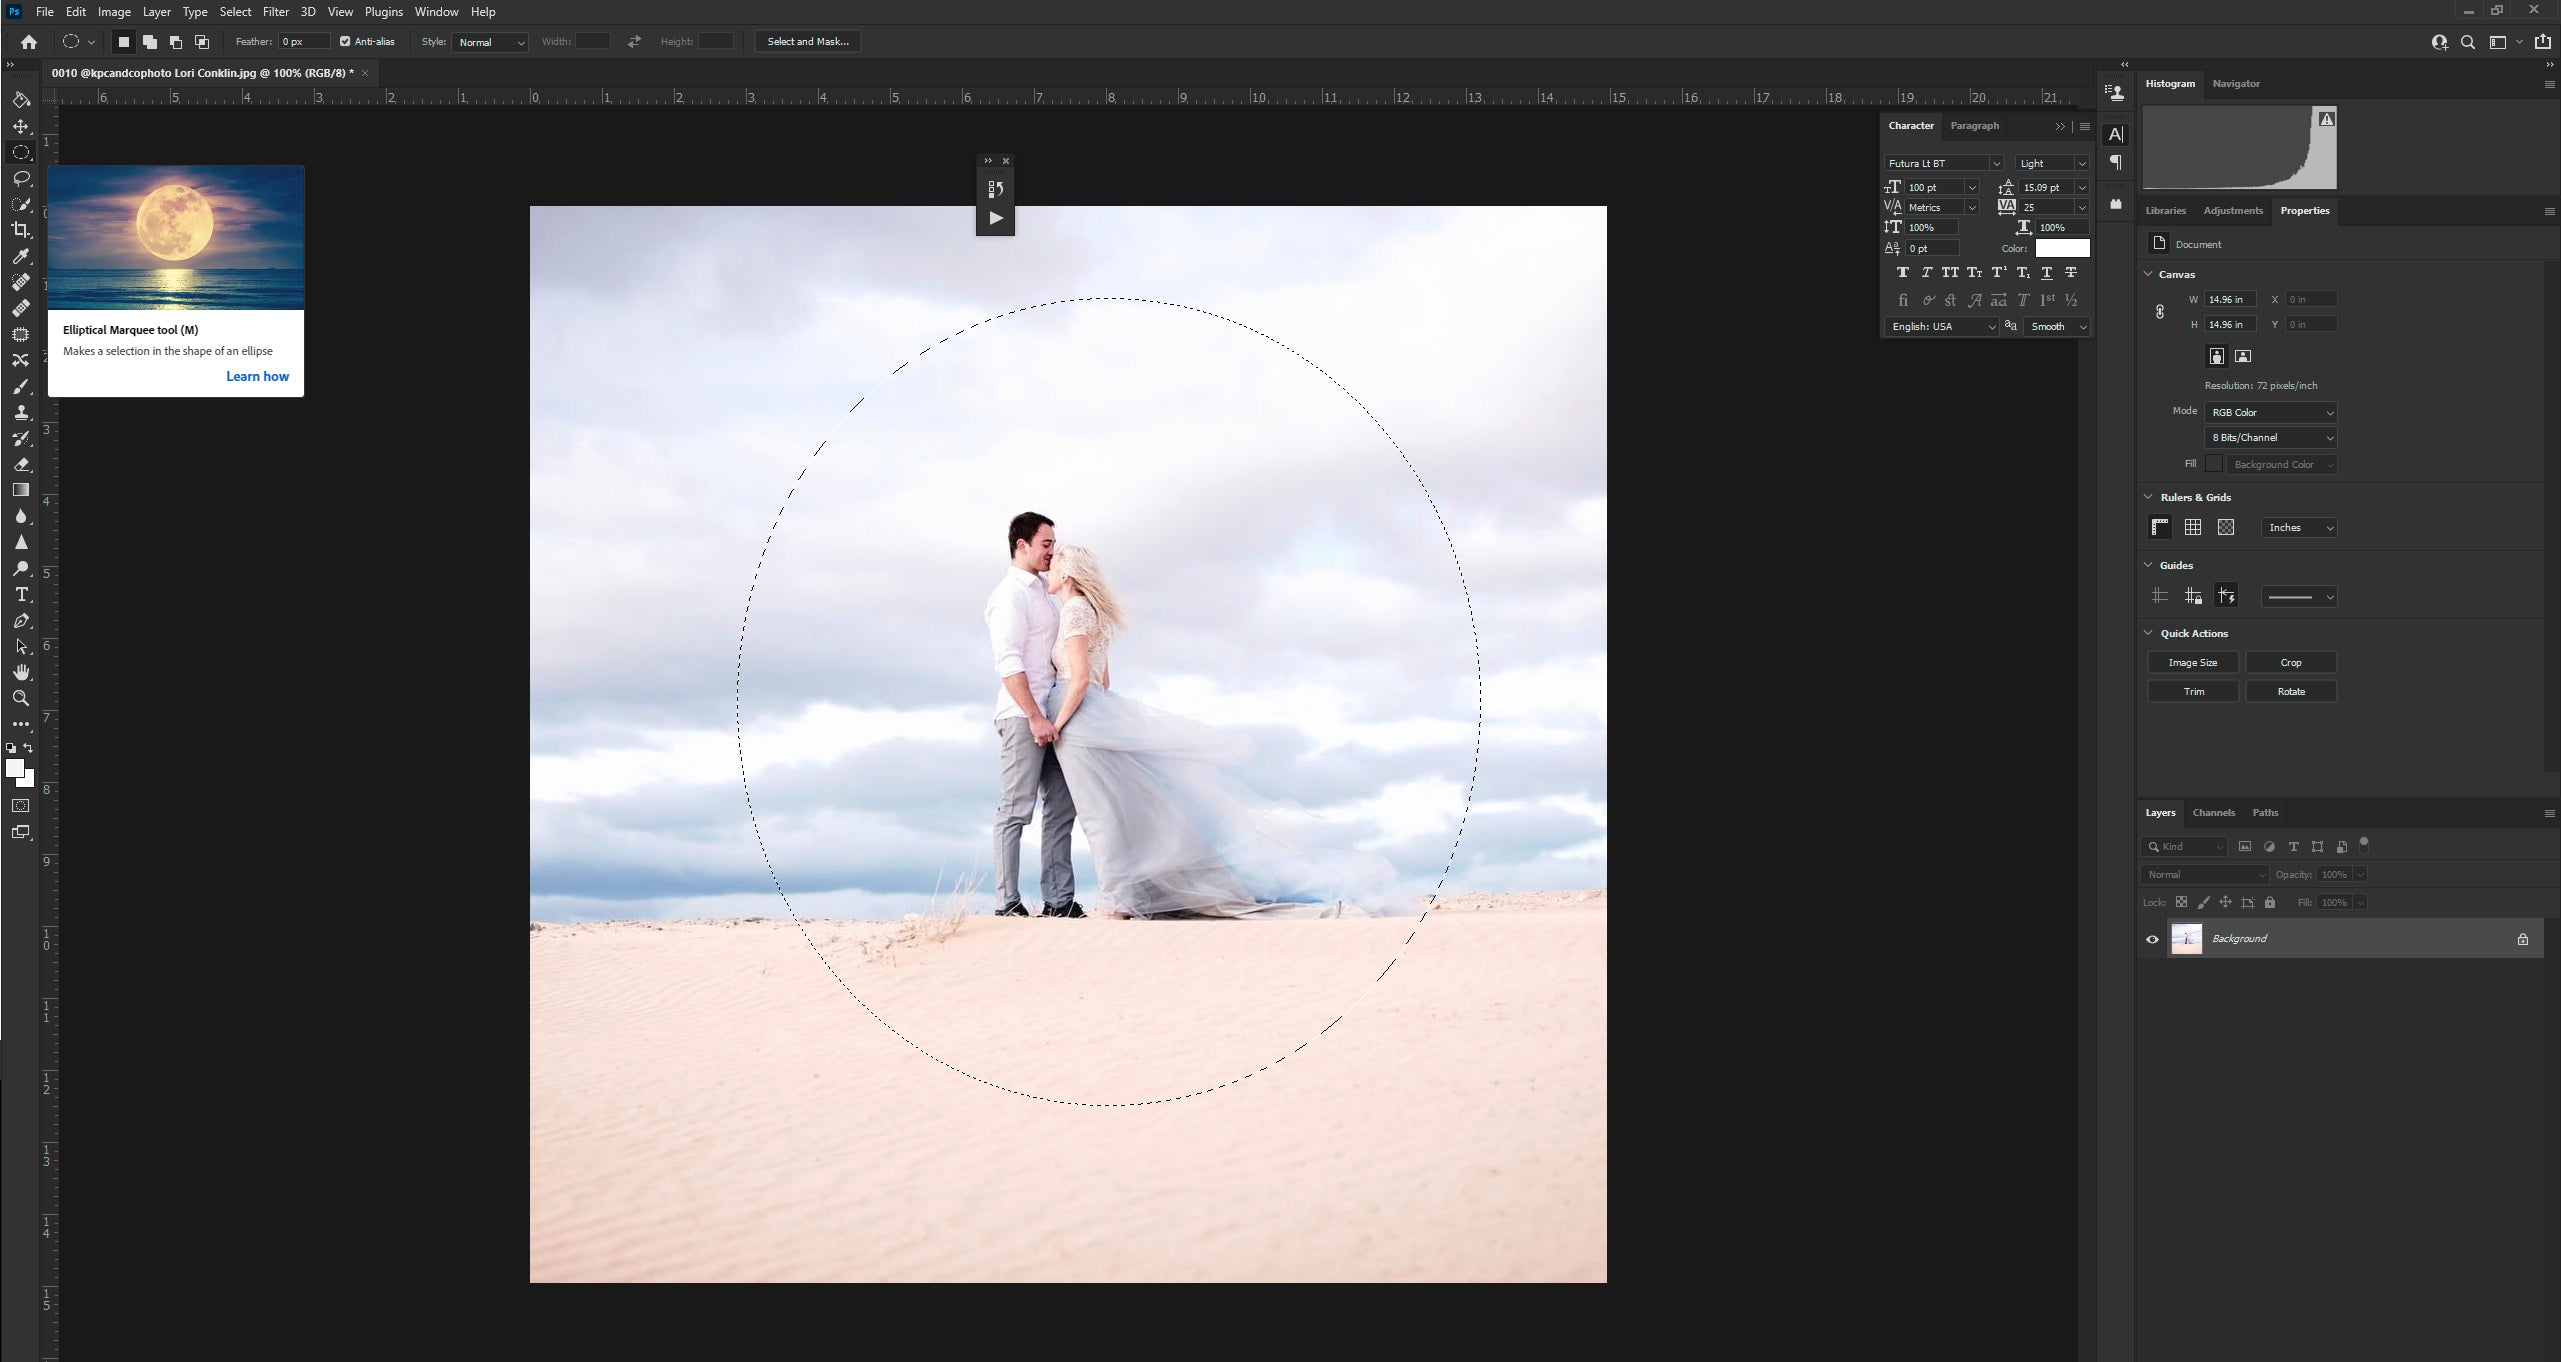 Making selection through elliptical marquee tool in Photoshop